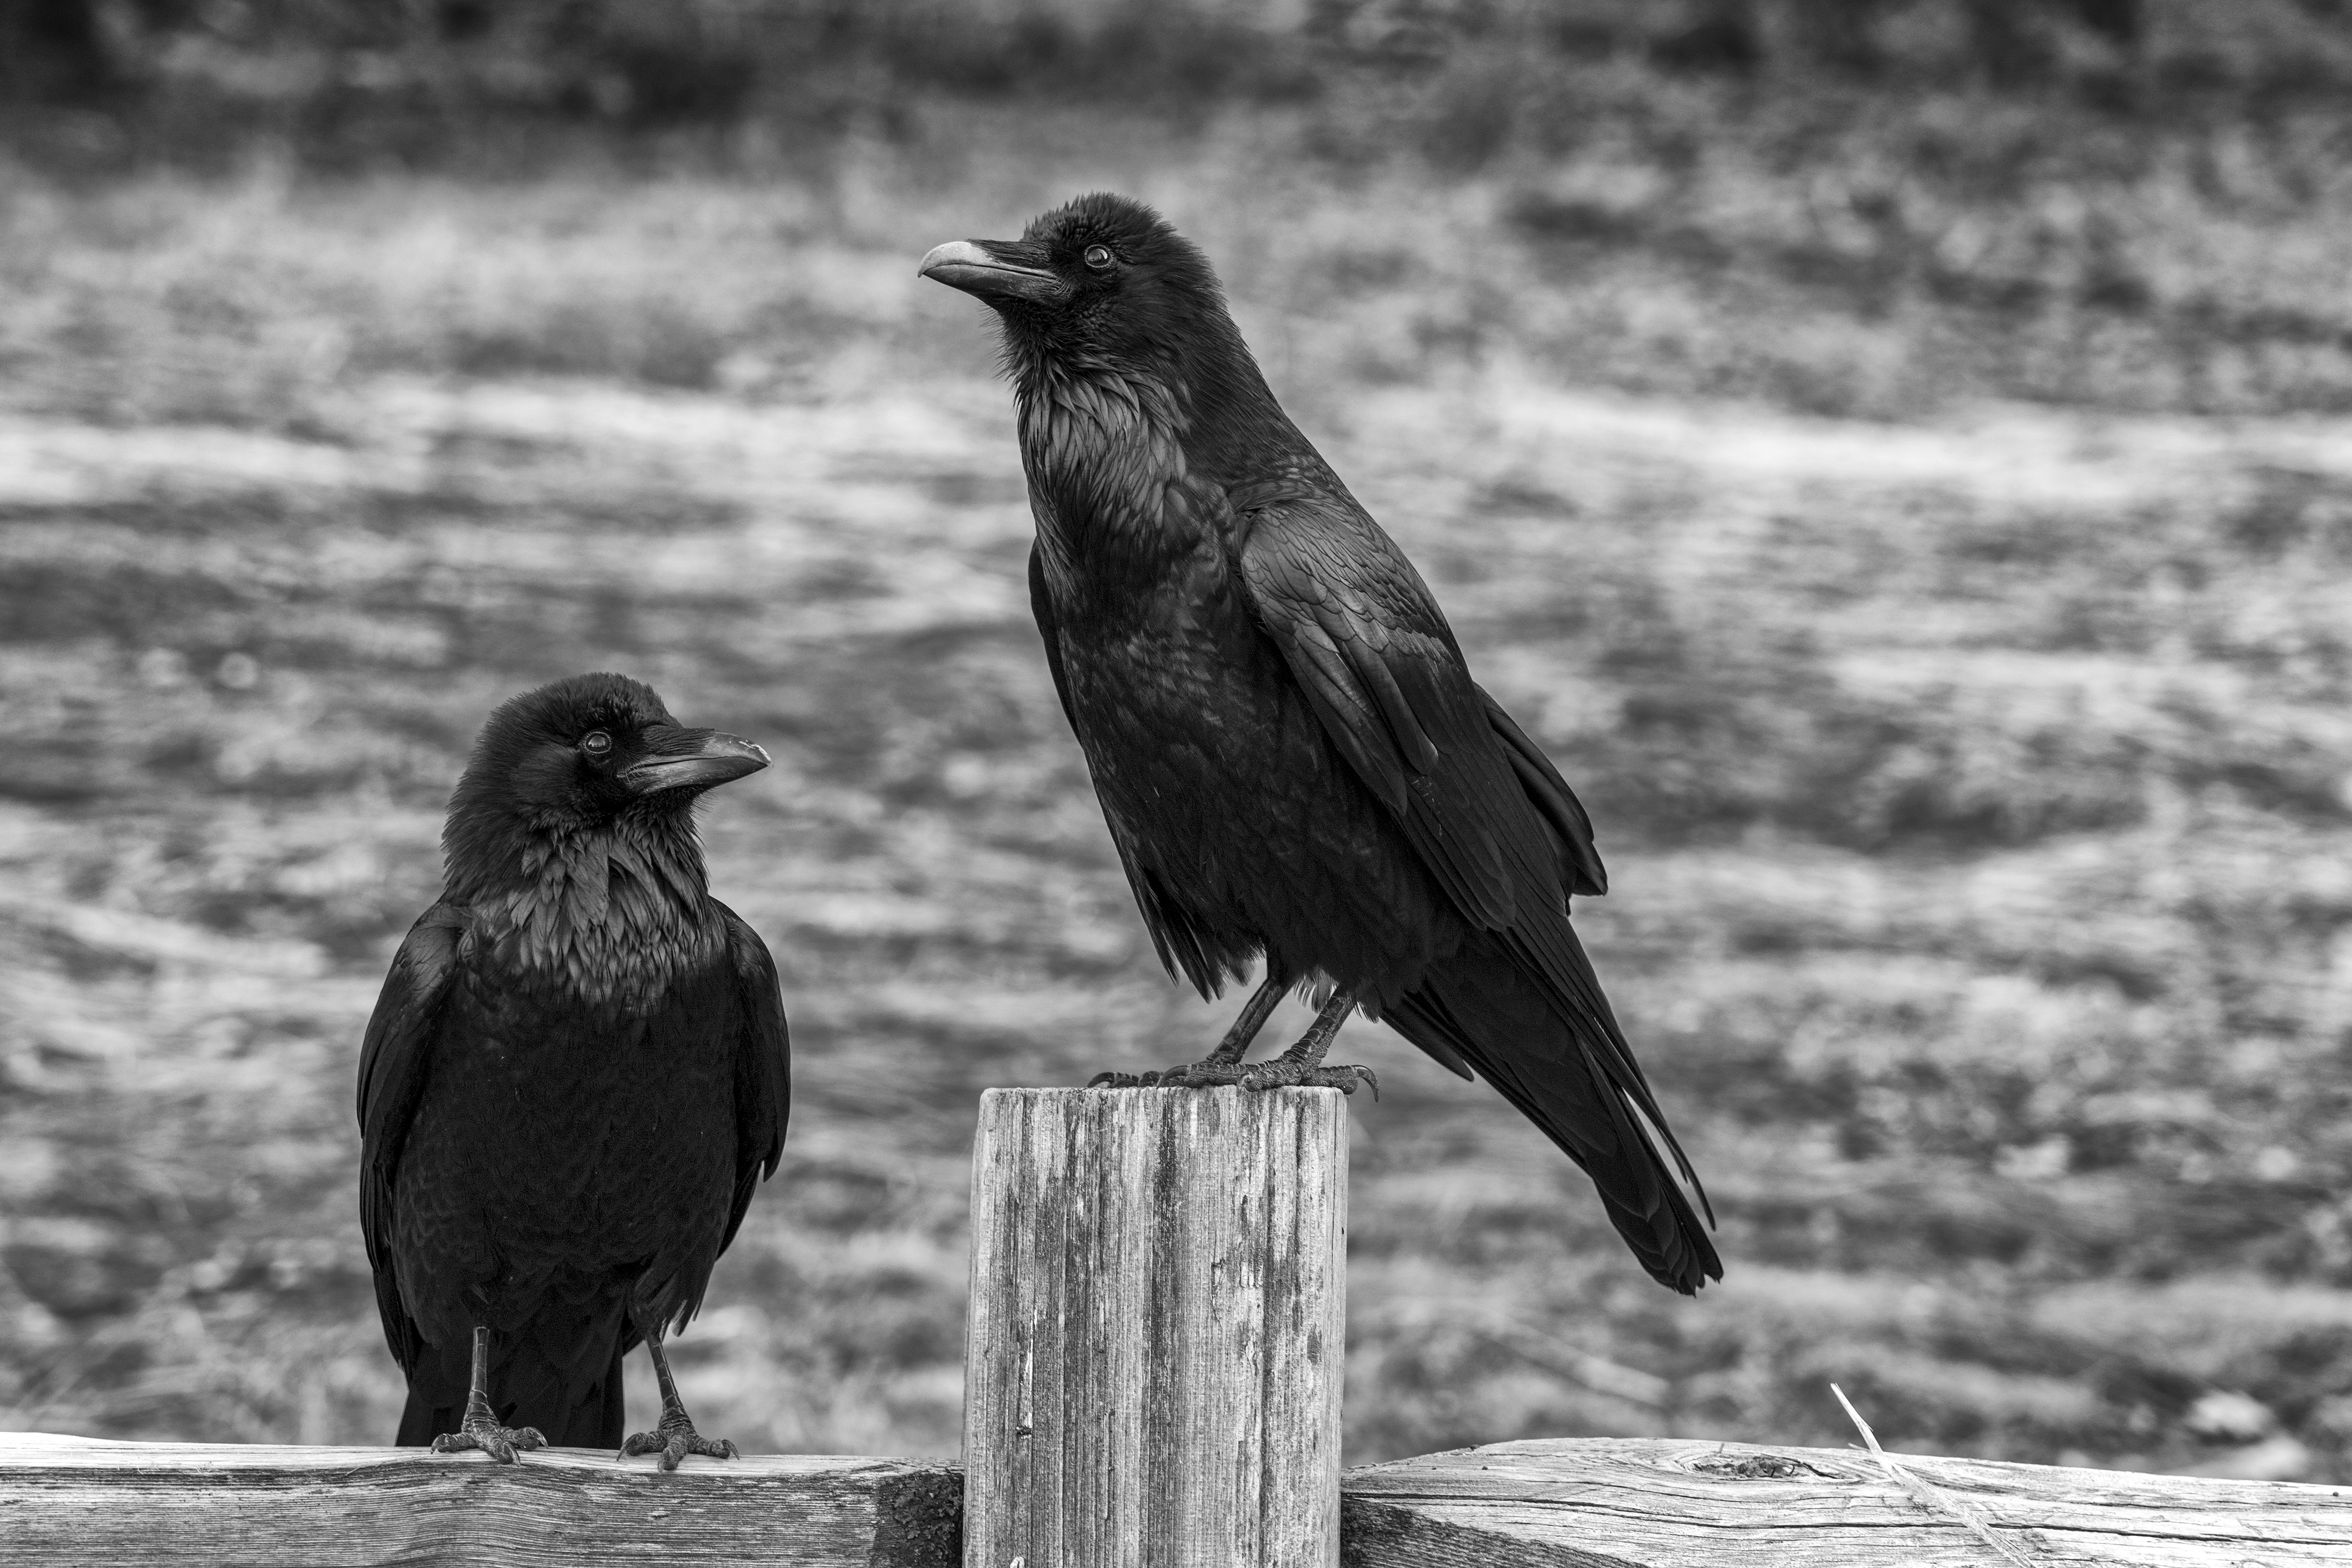 130954 download wallpaper Animals, Bw, Chb, Birds, Crows screensavers and pictures for free